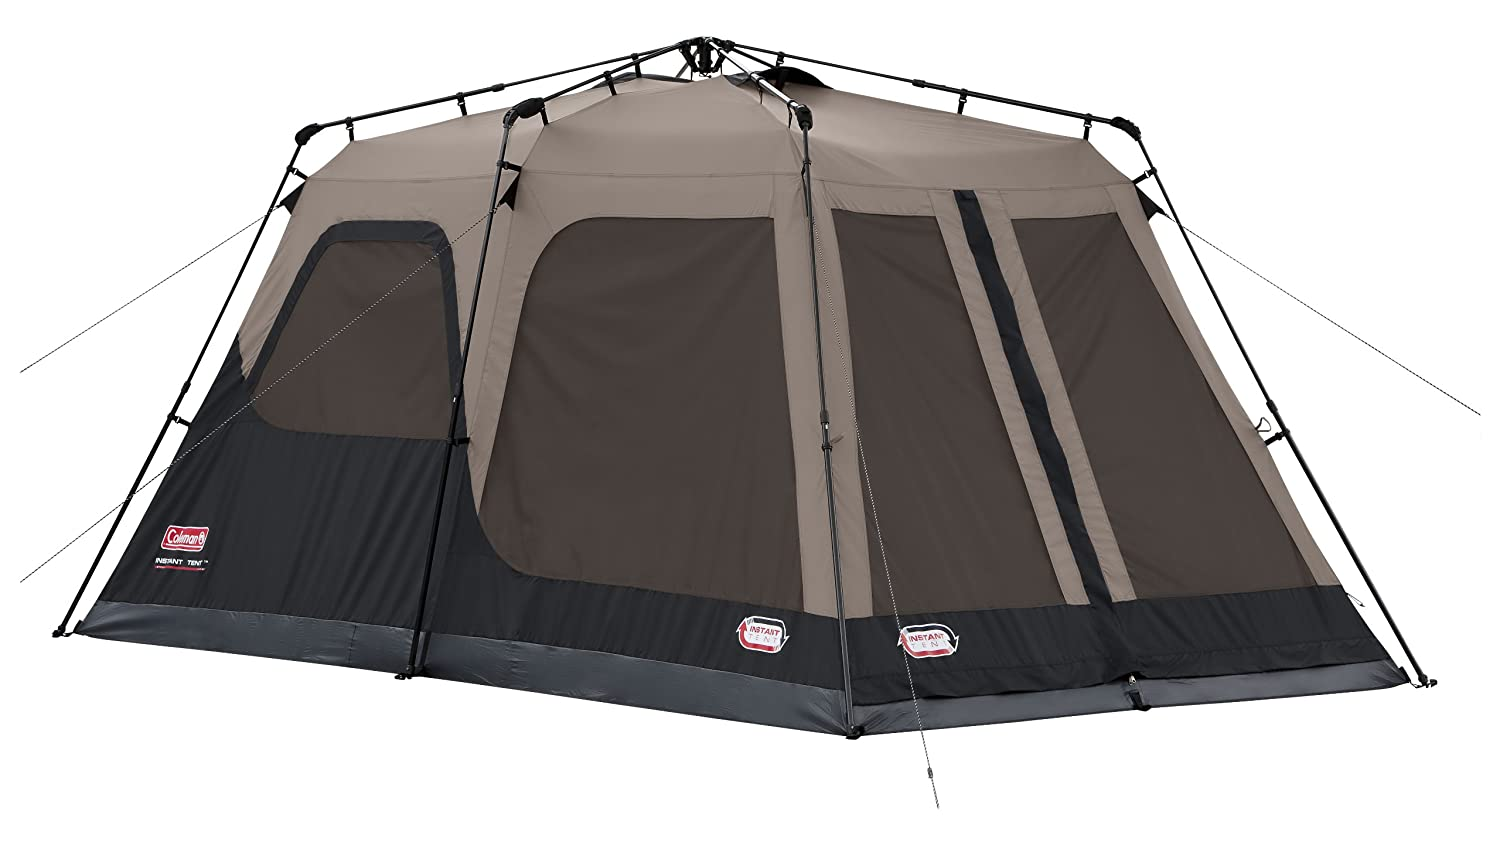 Wellbeing Enhanced: Coleman 8-Person Instant Tent Best Price